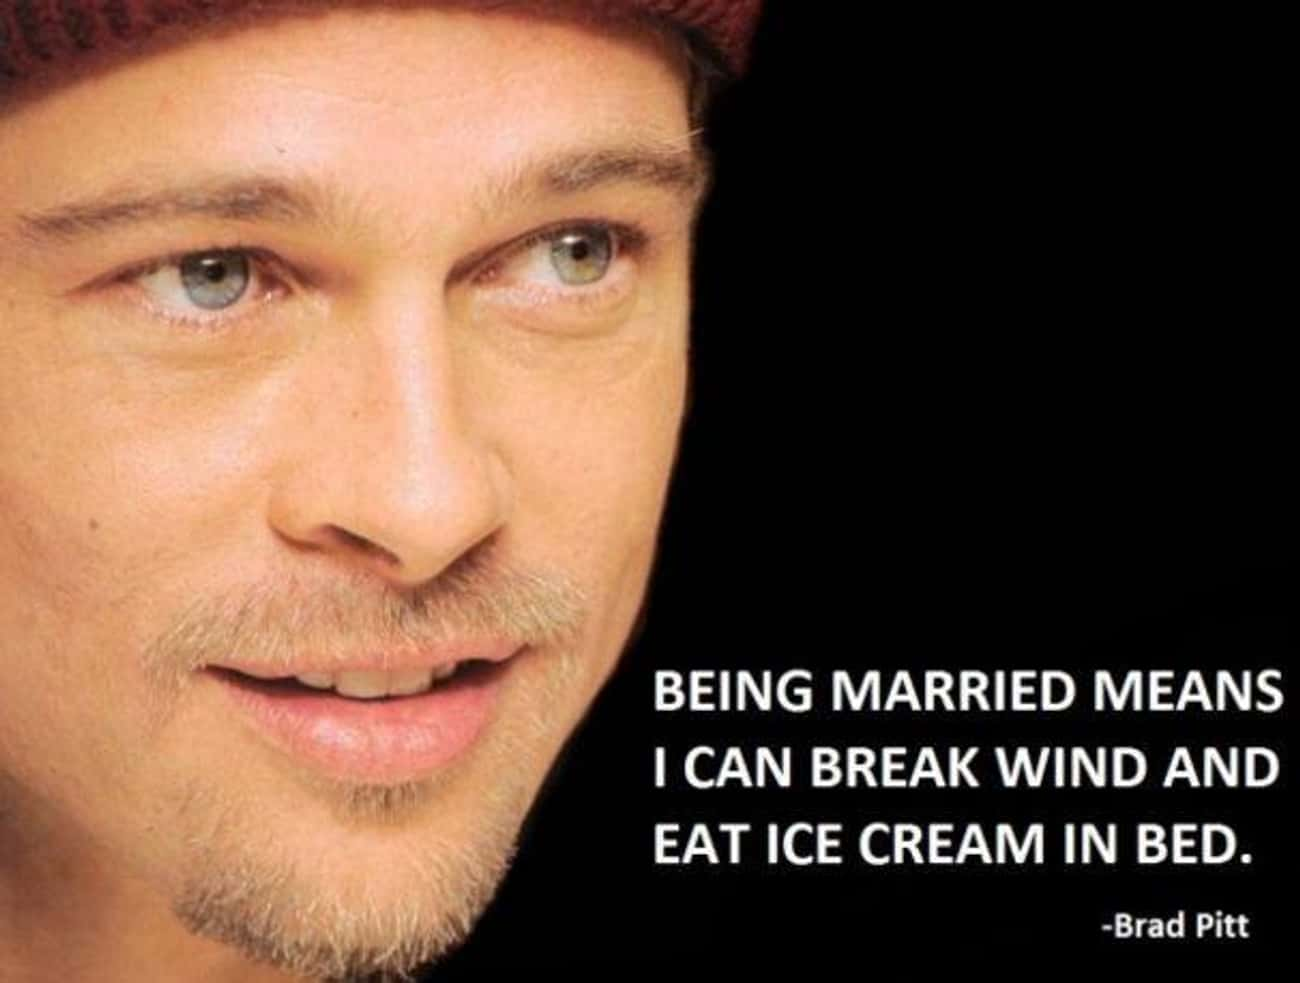 This Quote Just Became Extreme is listed (or ranked) 3 on the list 22 Funny Celebrity Quotes All Bros Can Totally Relate To